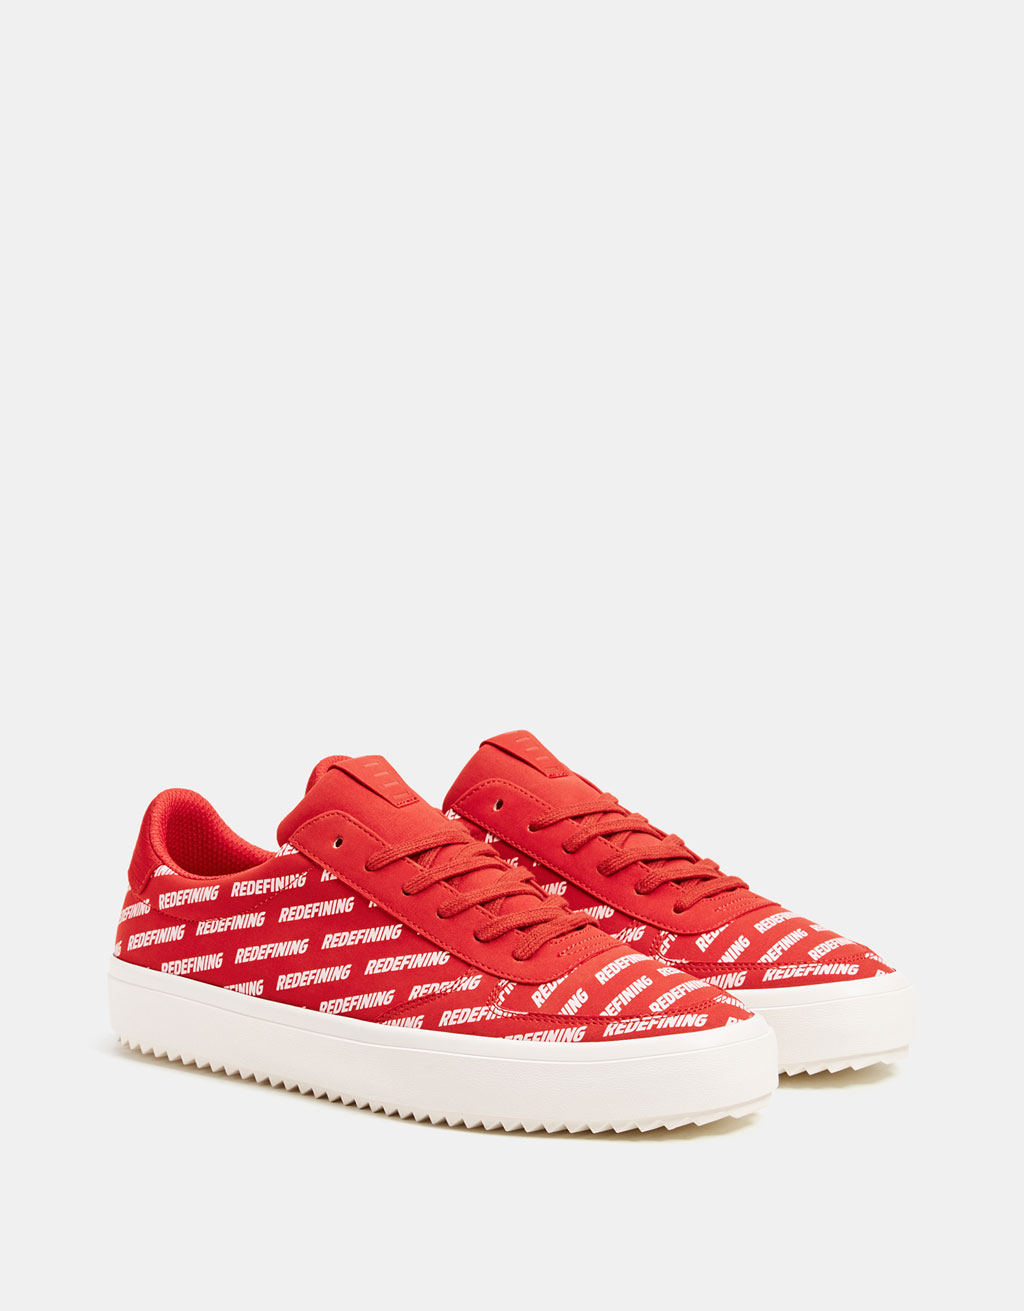 Men's red slogan trainers